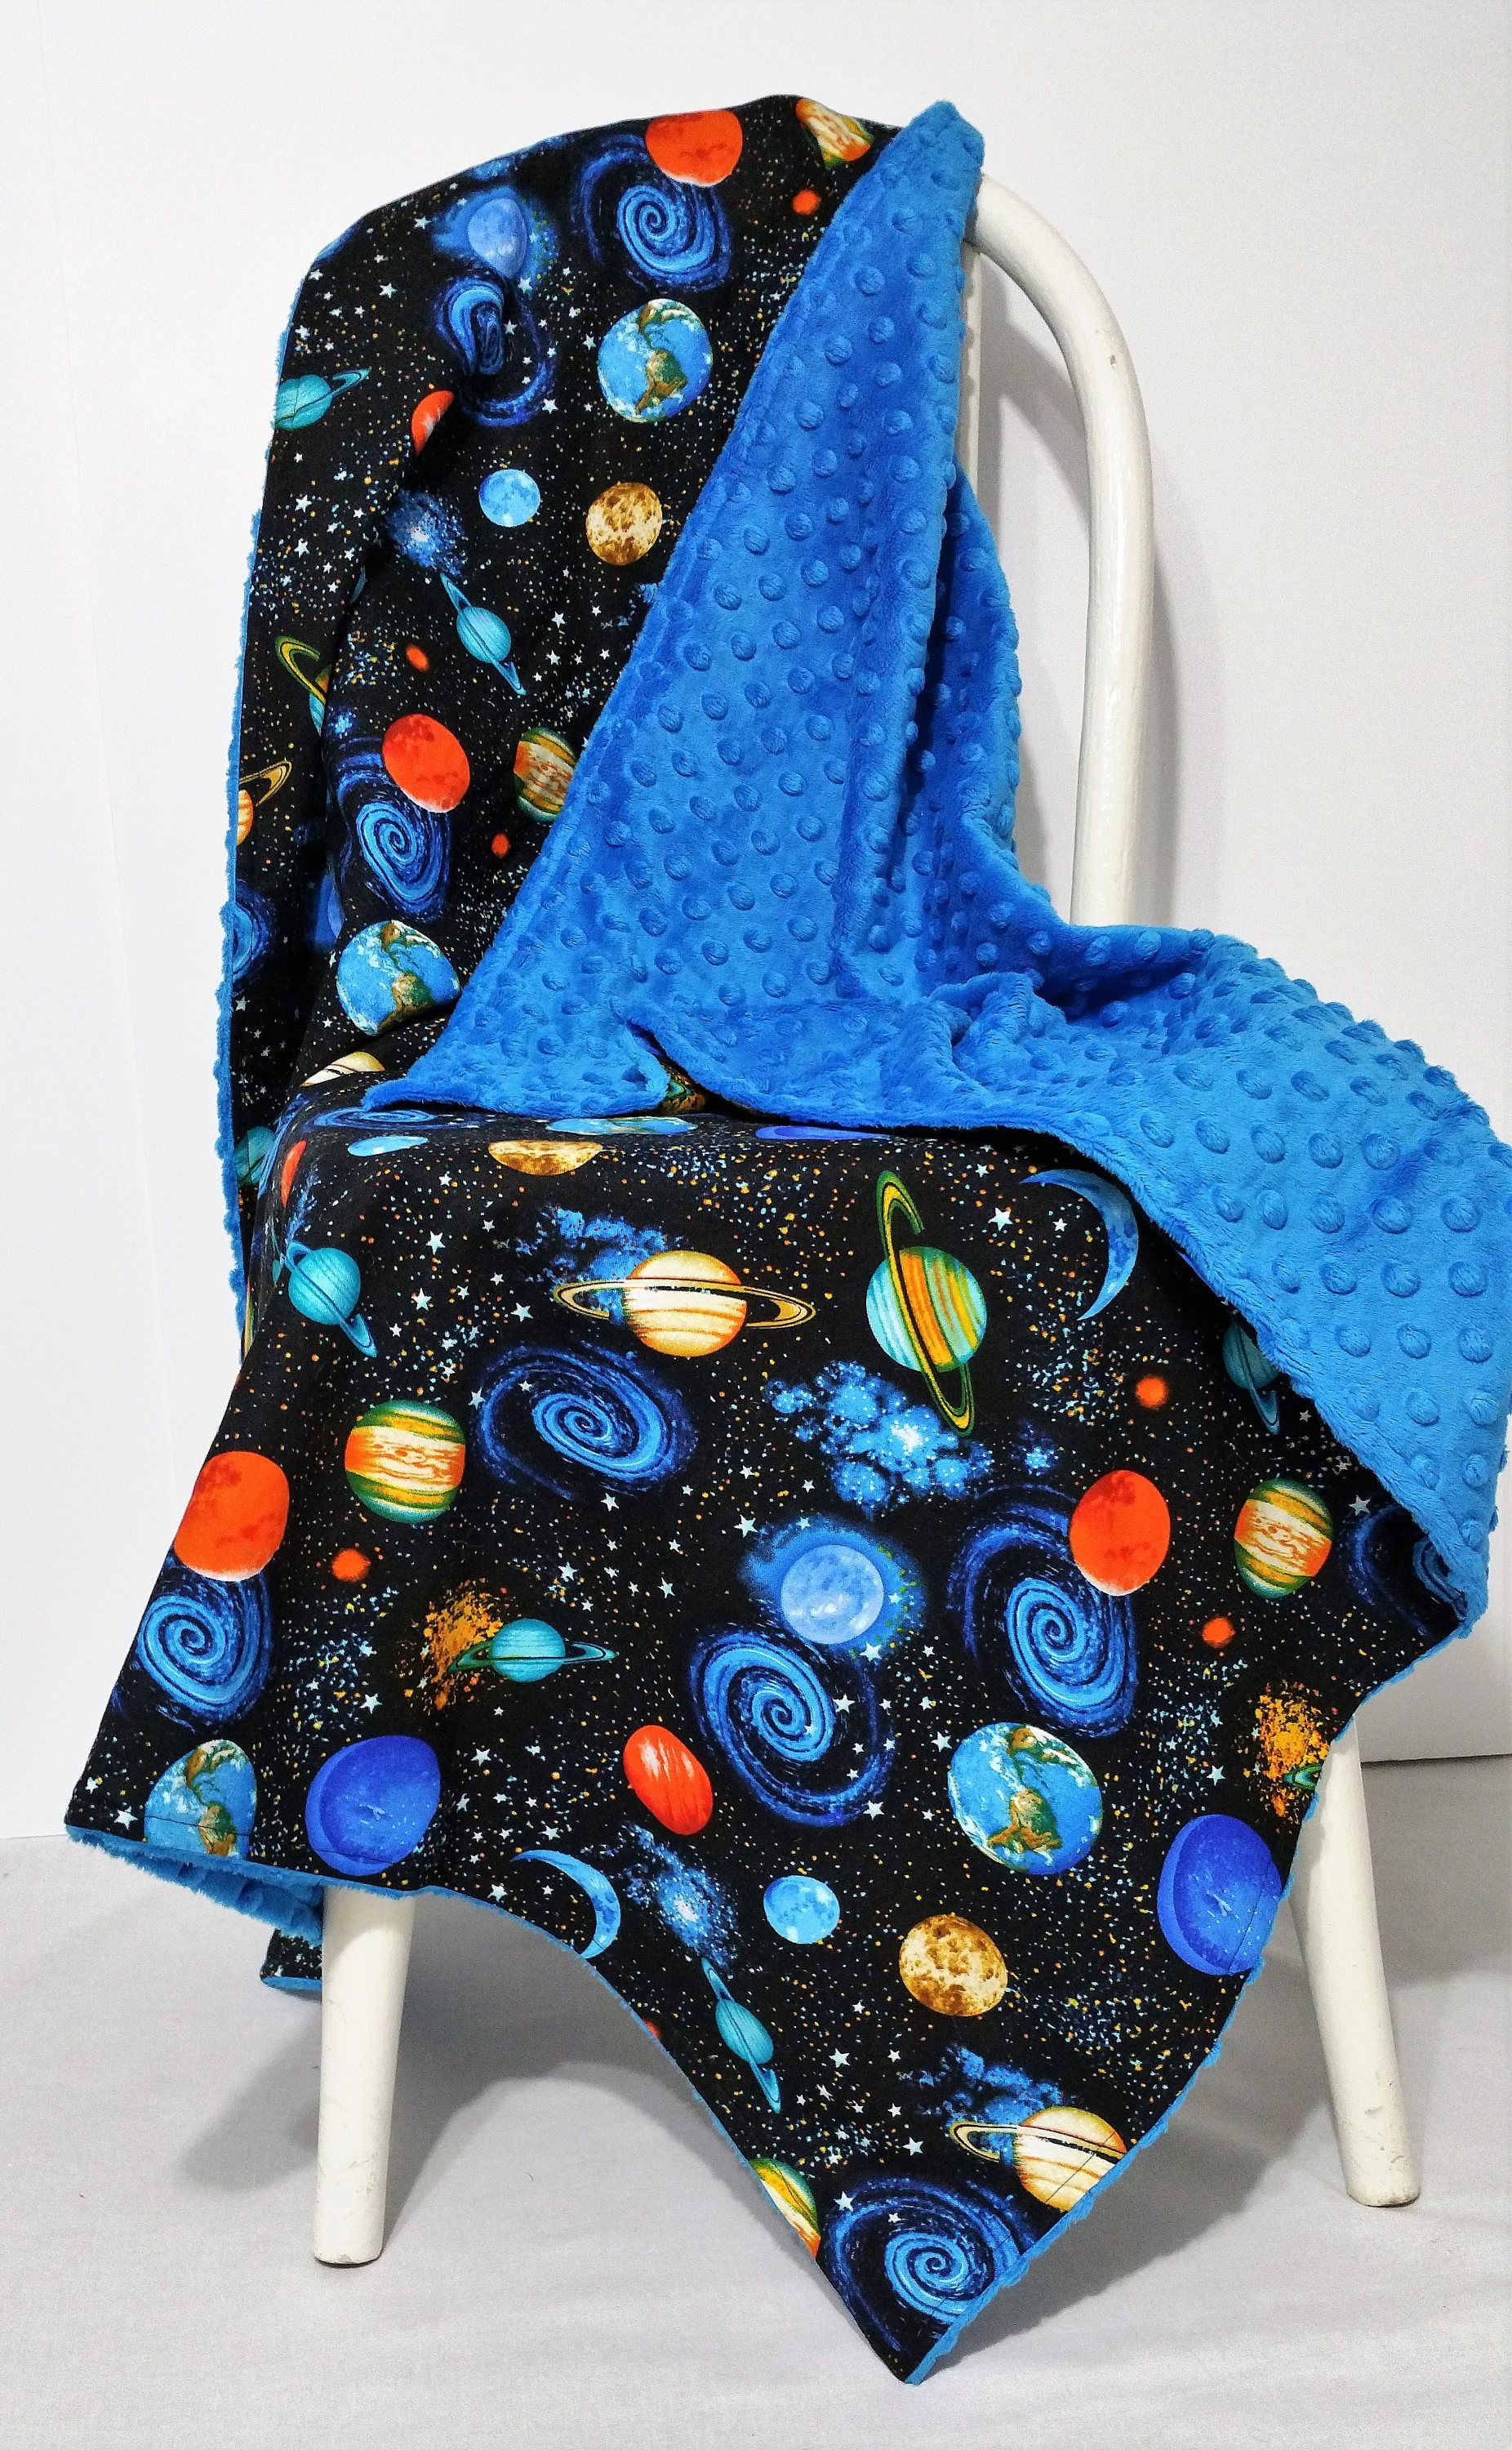 Outer space baby blanket space nursery gender neutral ...